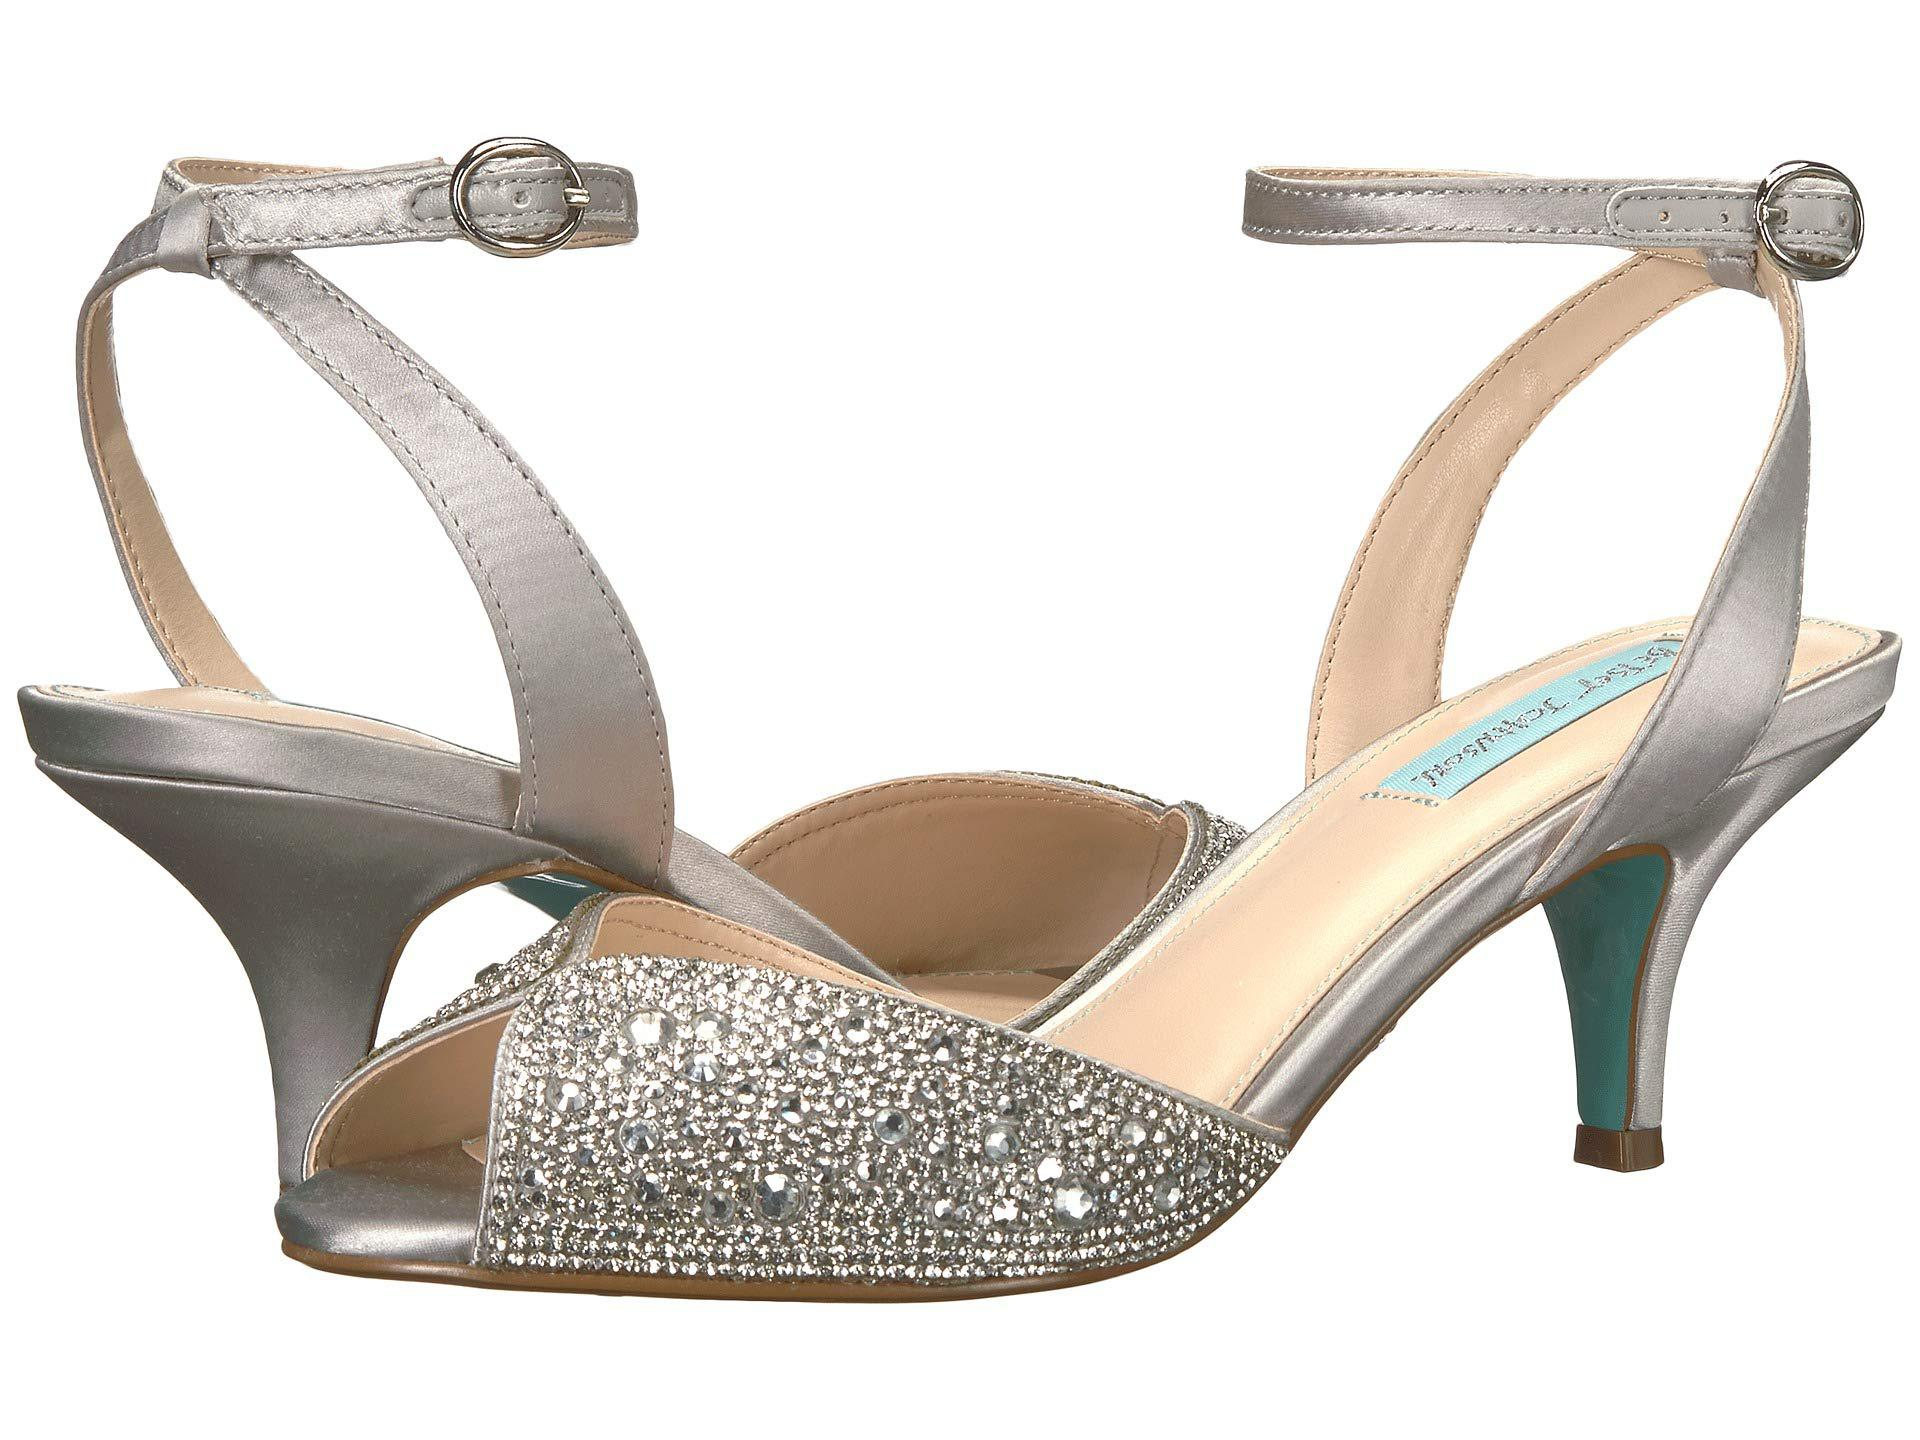 00618f78fc5 Lyst - Betsey Johnson Royal (silver) High Heels in Metallic